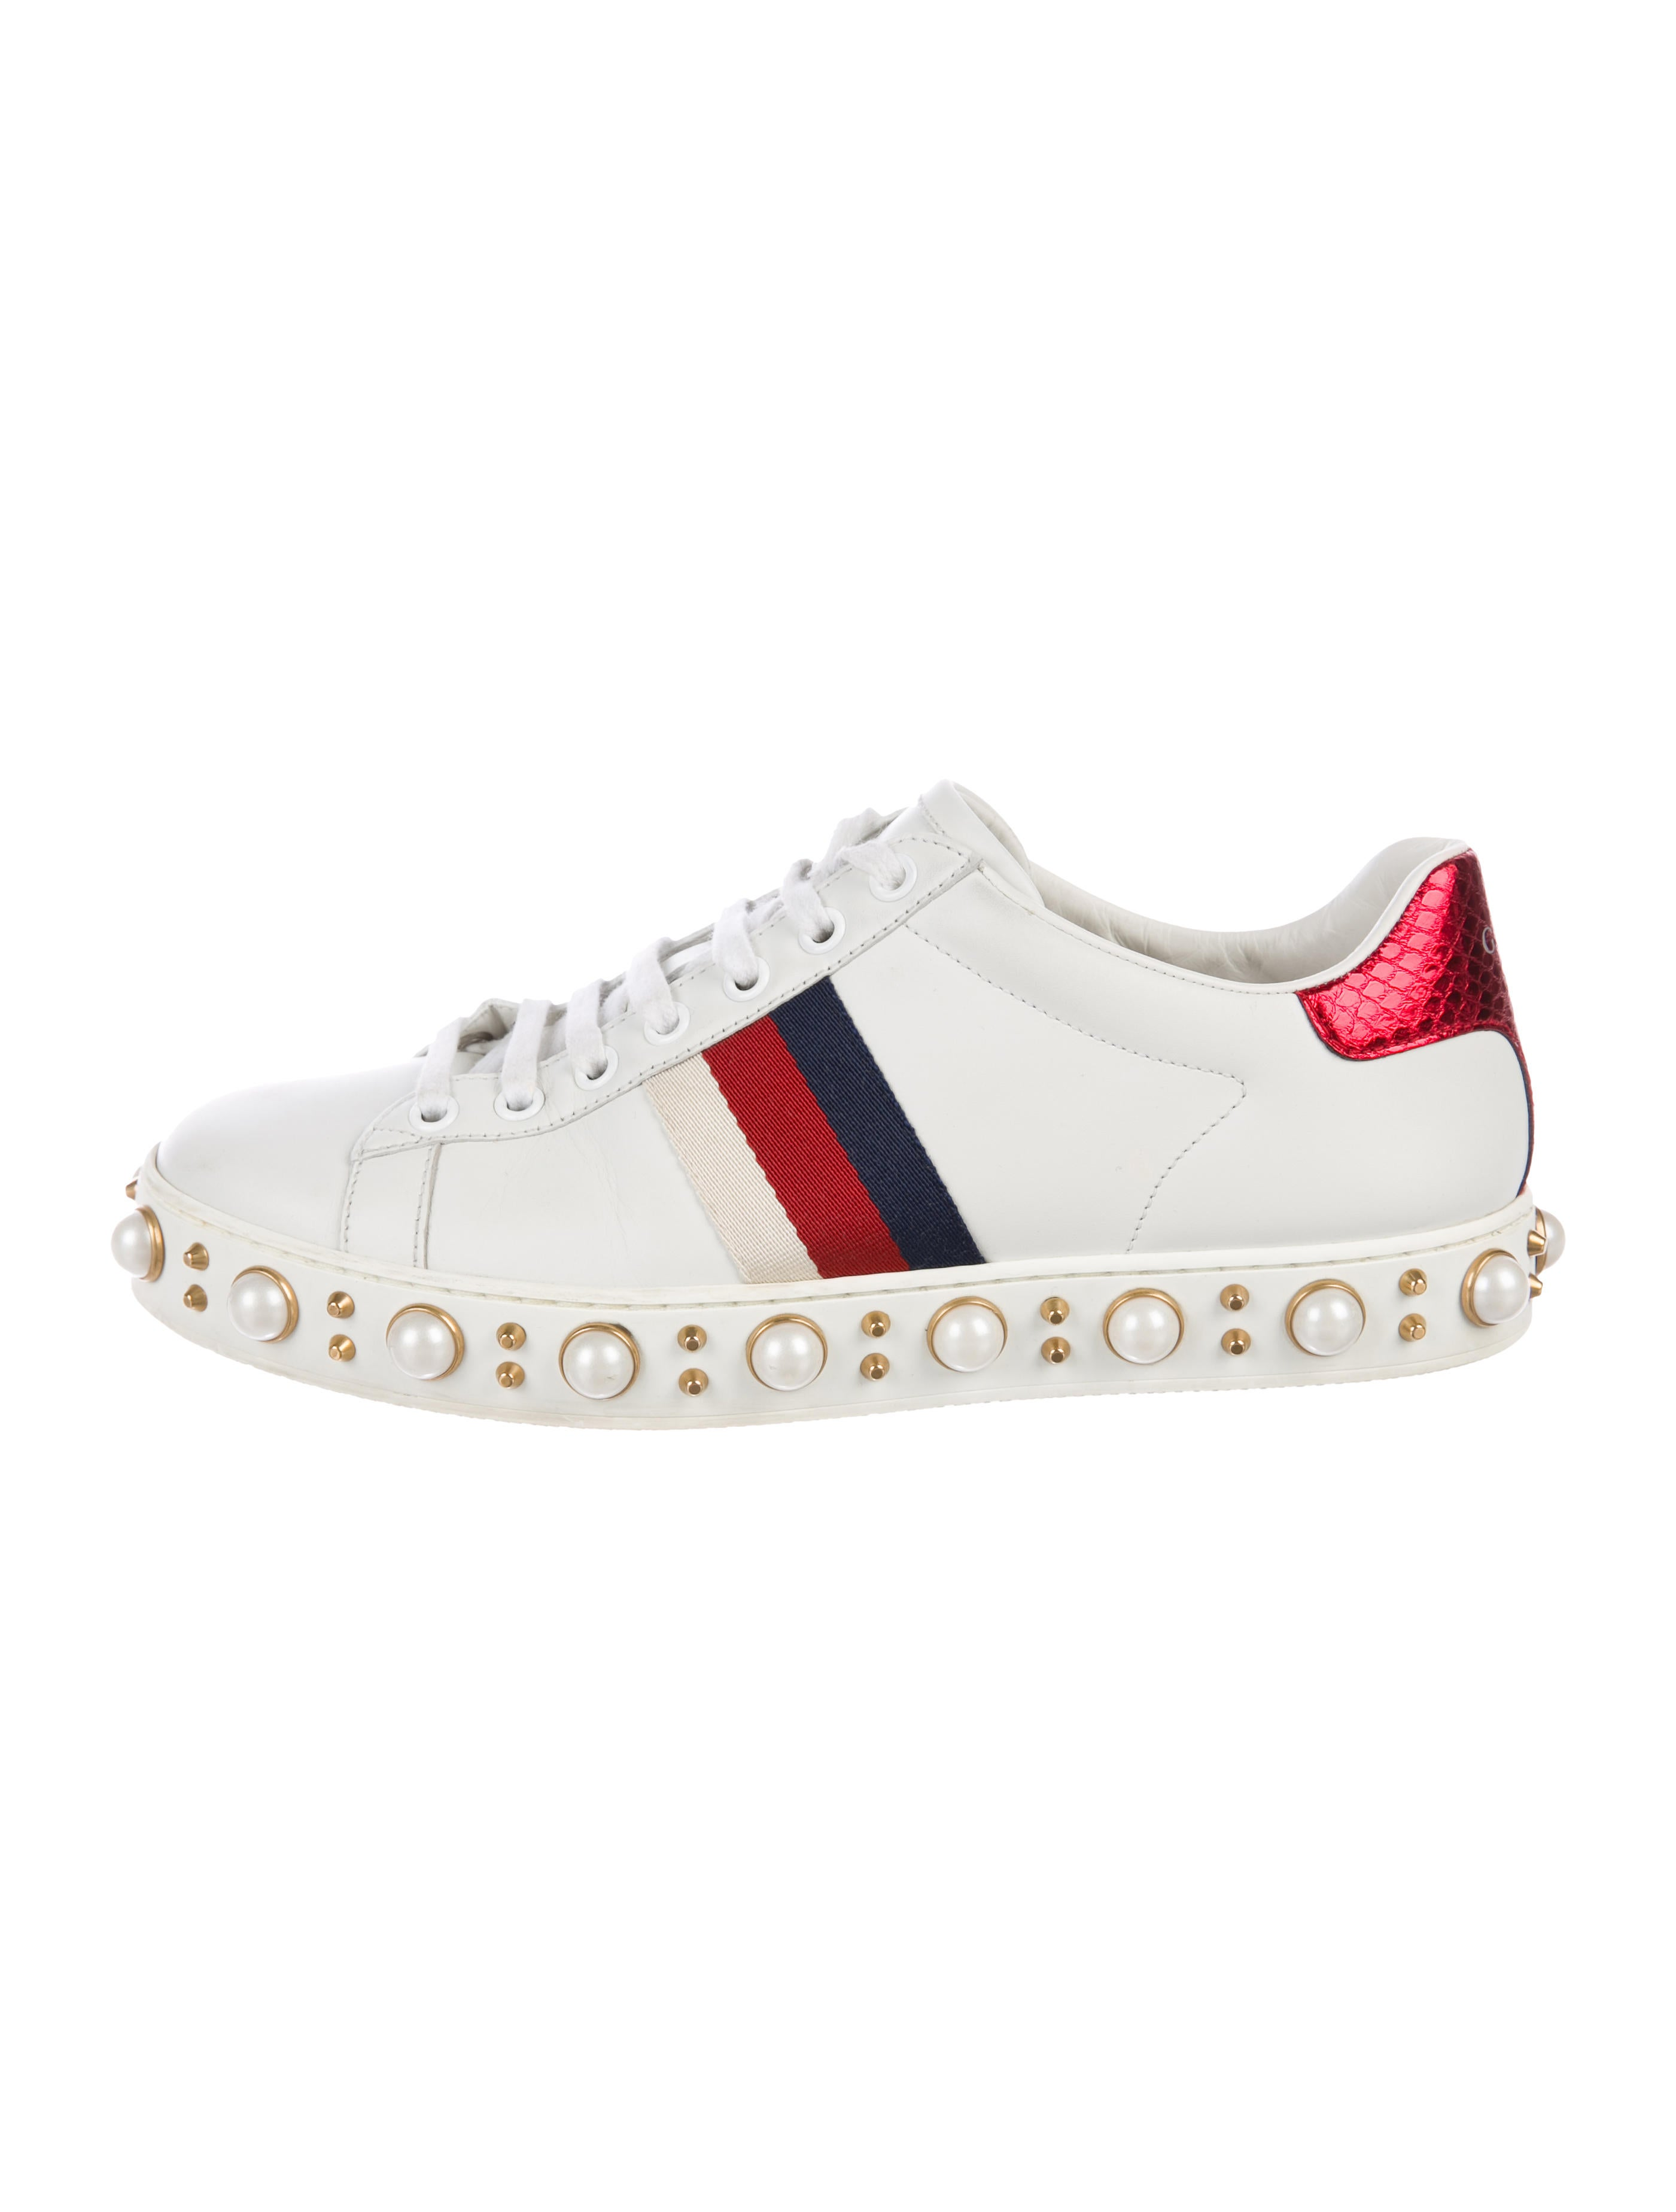 2018 Ace Studded Sneakers